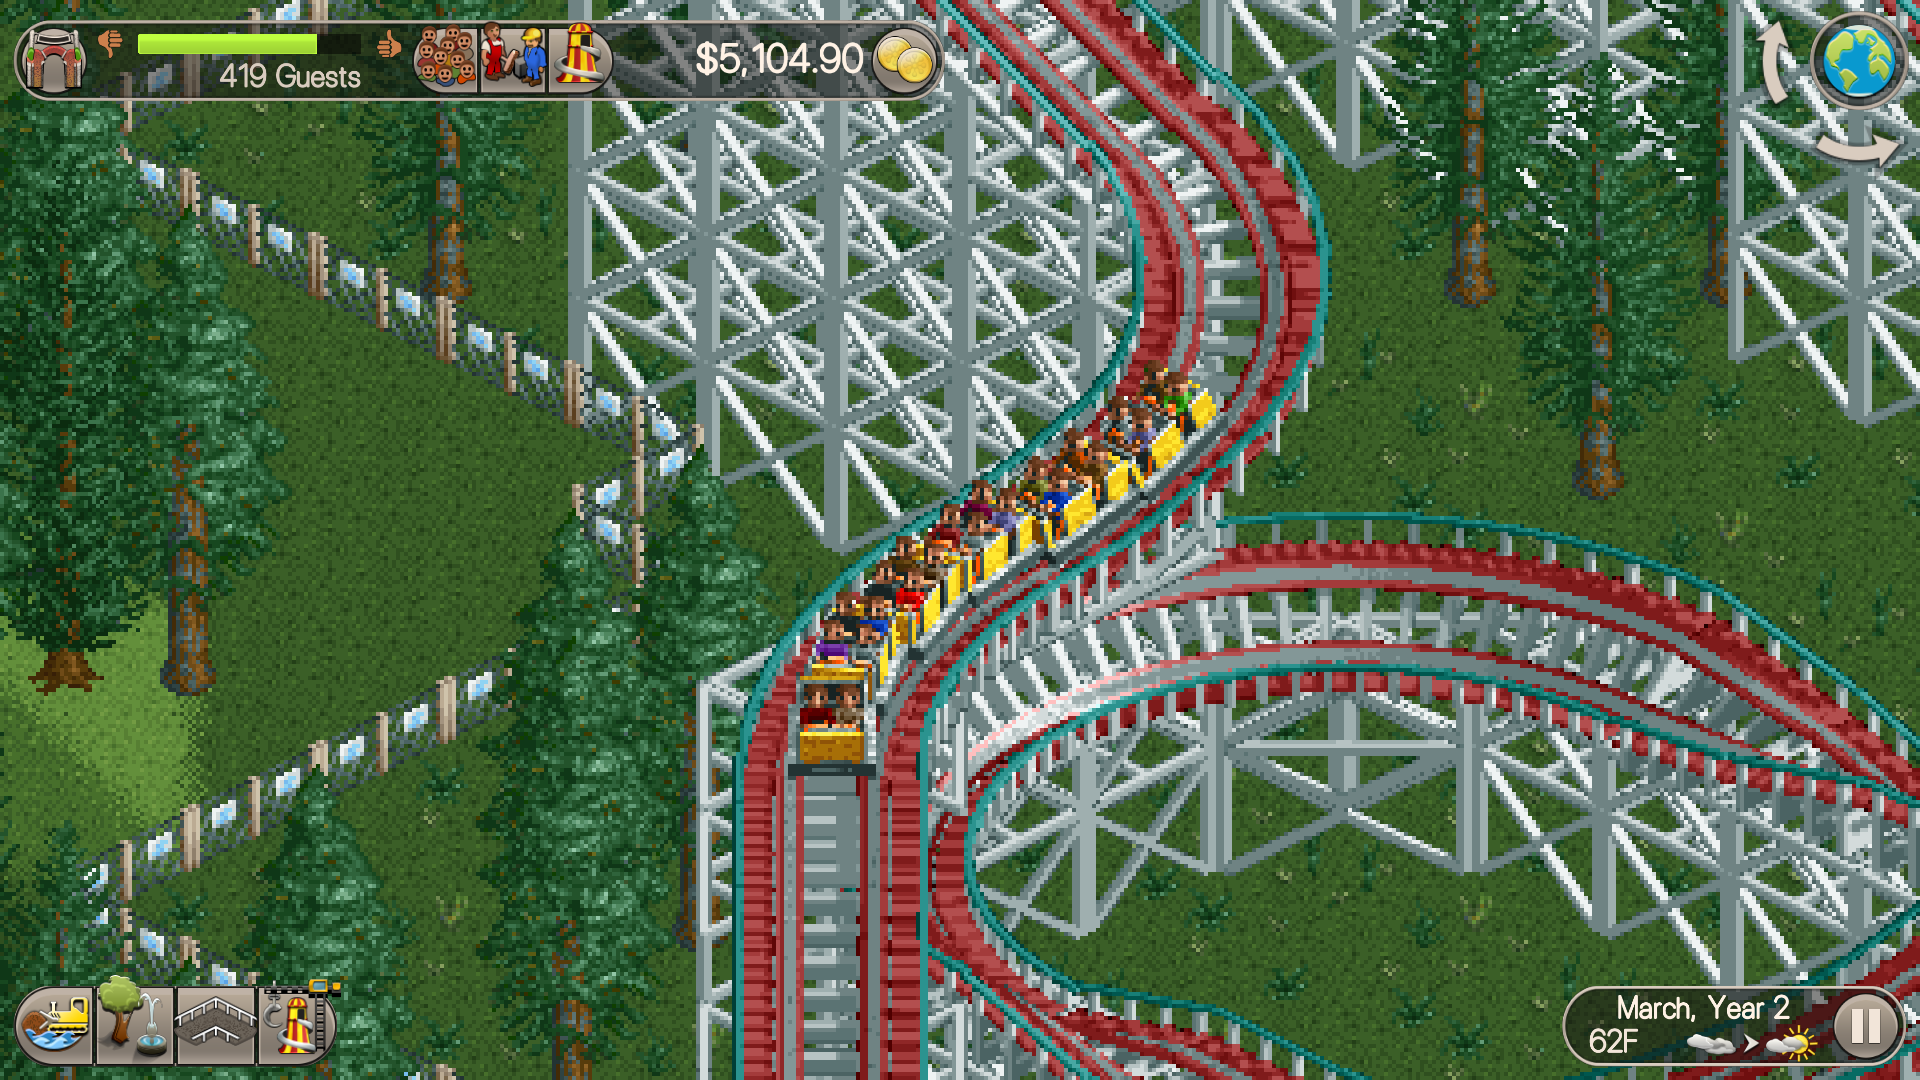 Atari re-publishes Roller Coaster Tycoon Classic after